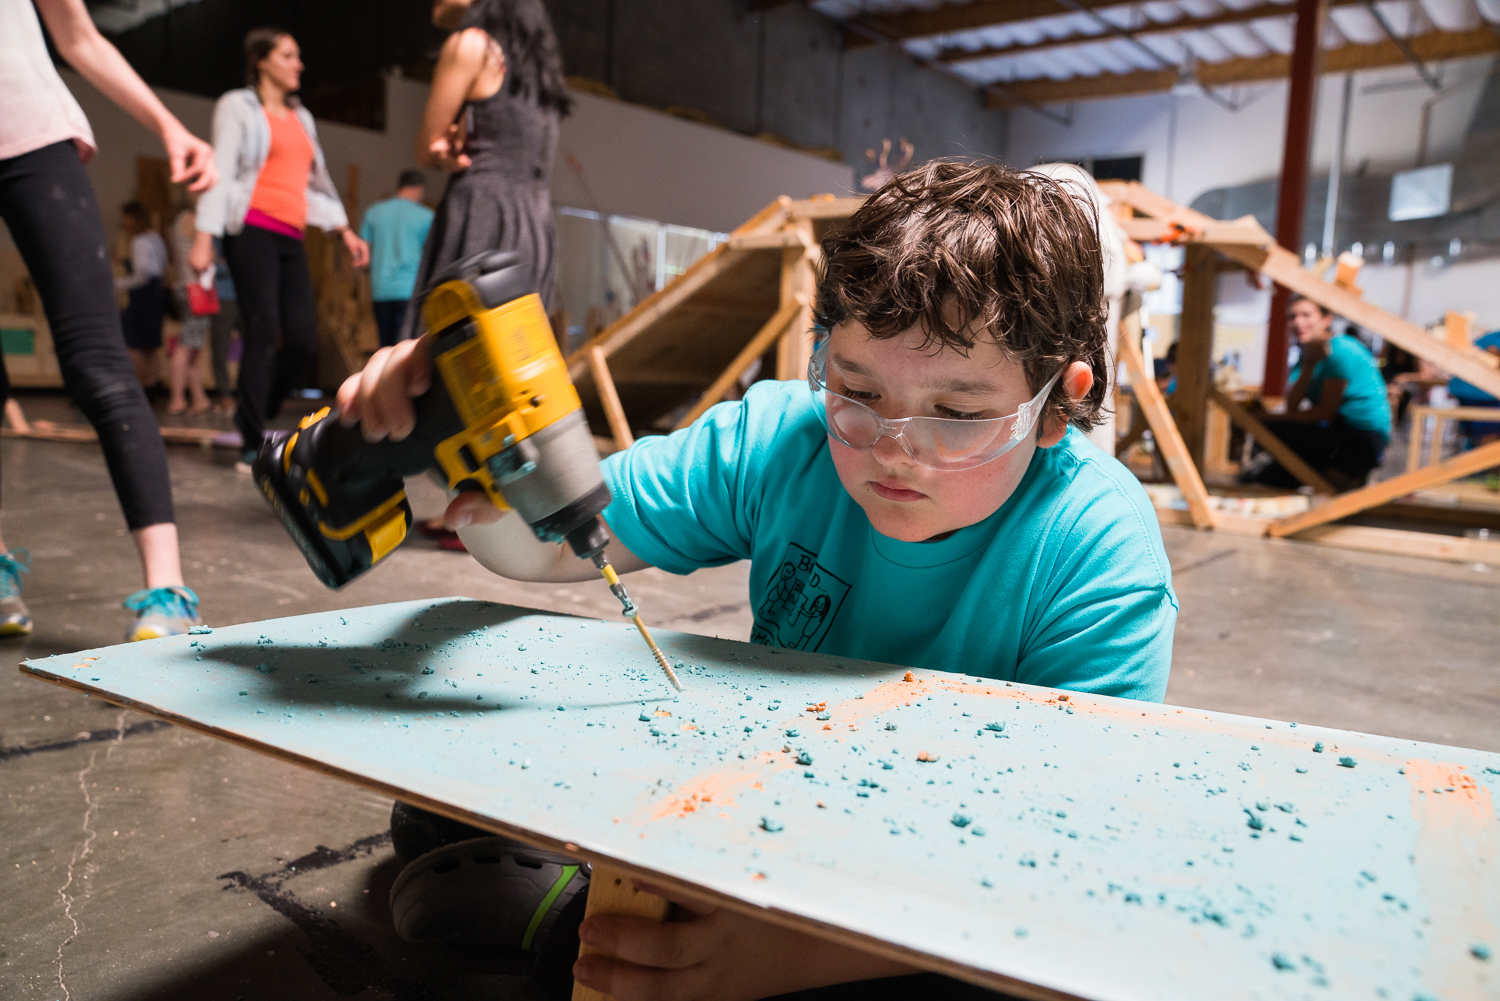 A boy wearing goggles works with a power screwdriver and a wooden board.